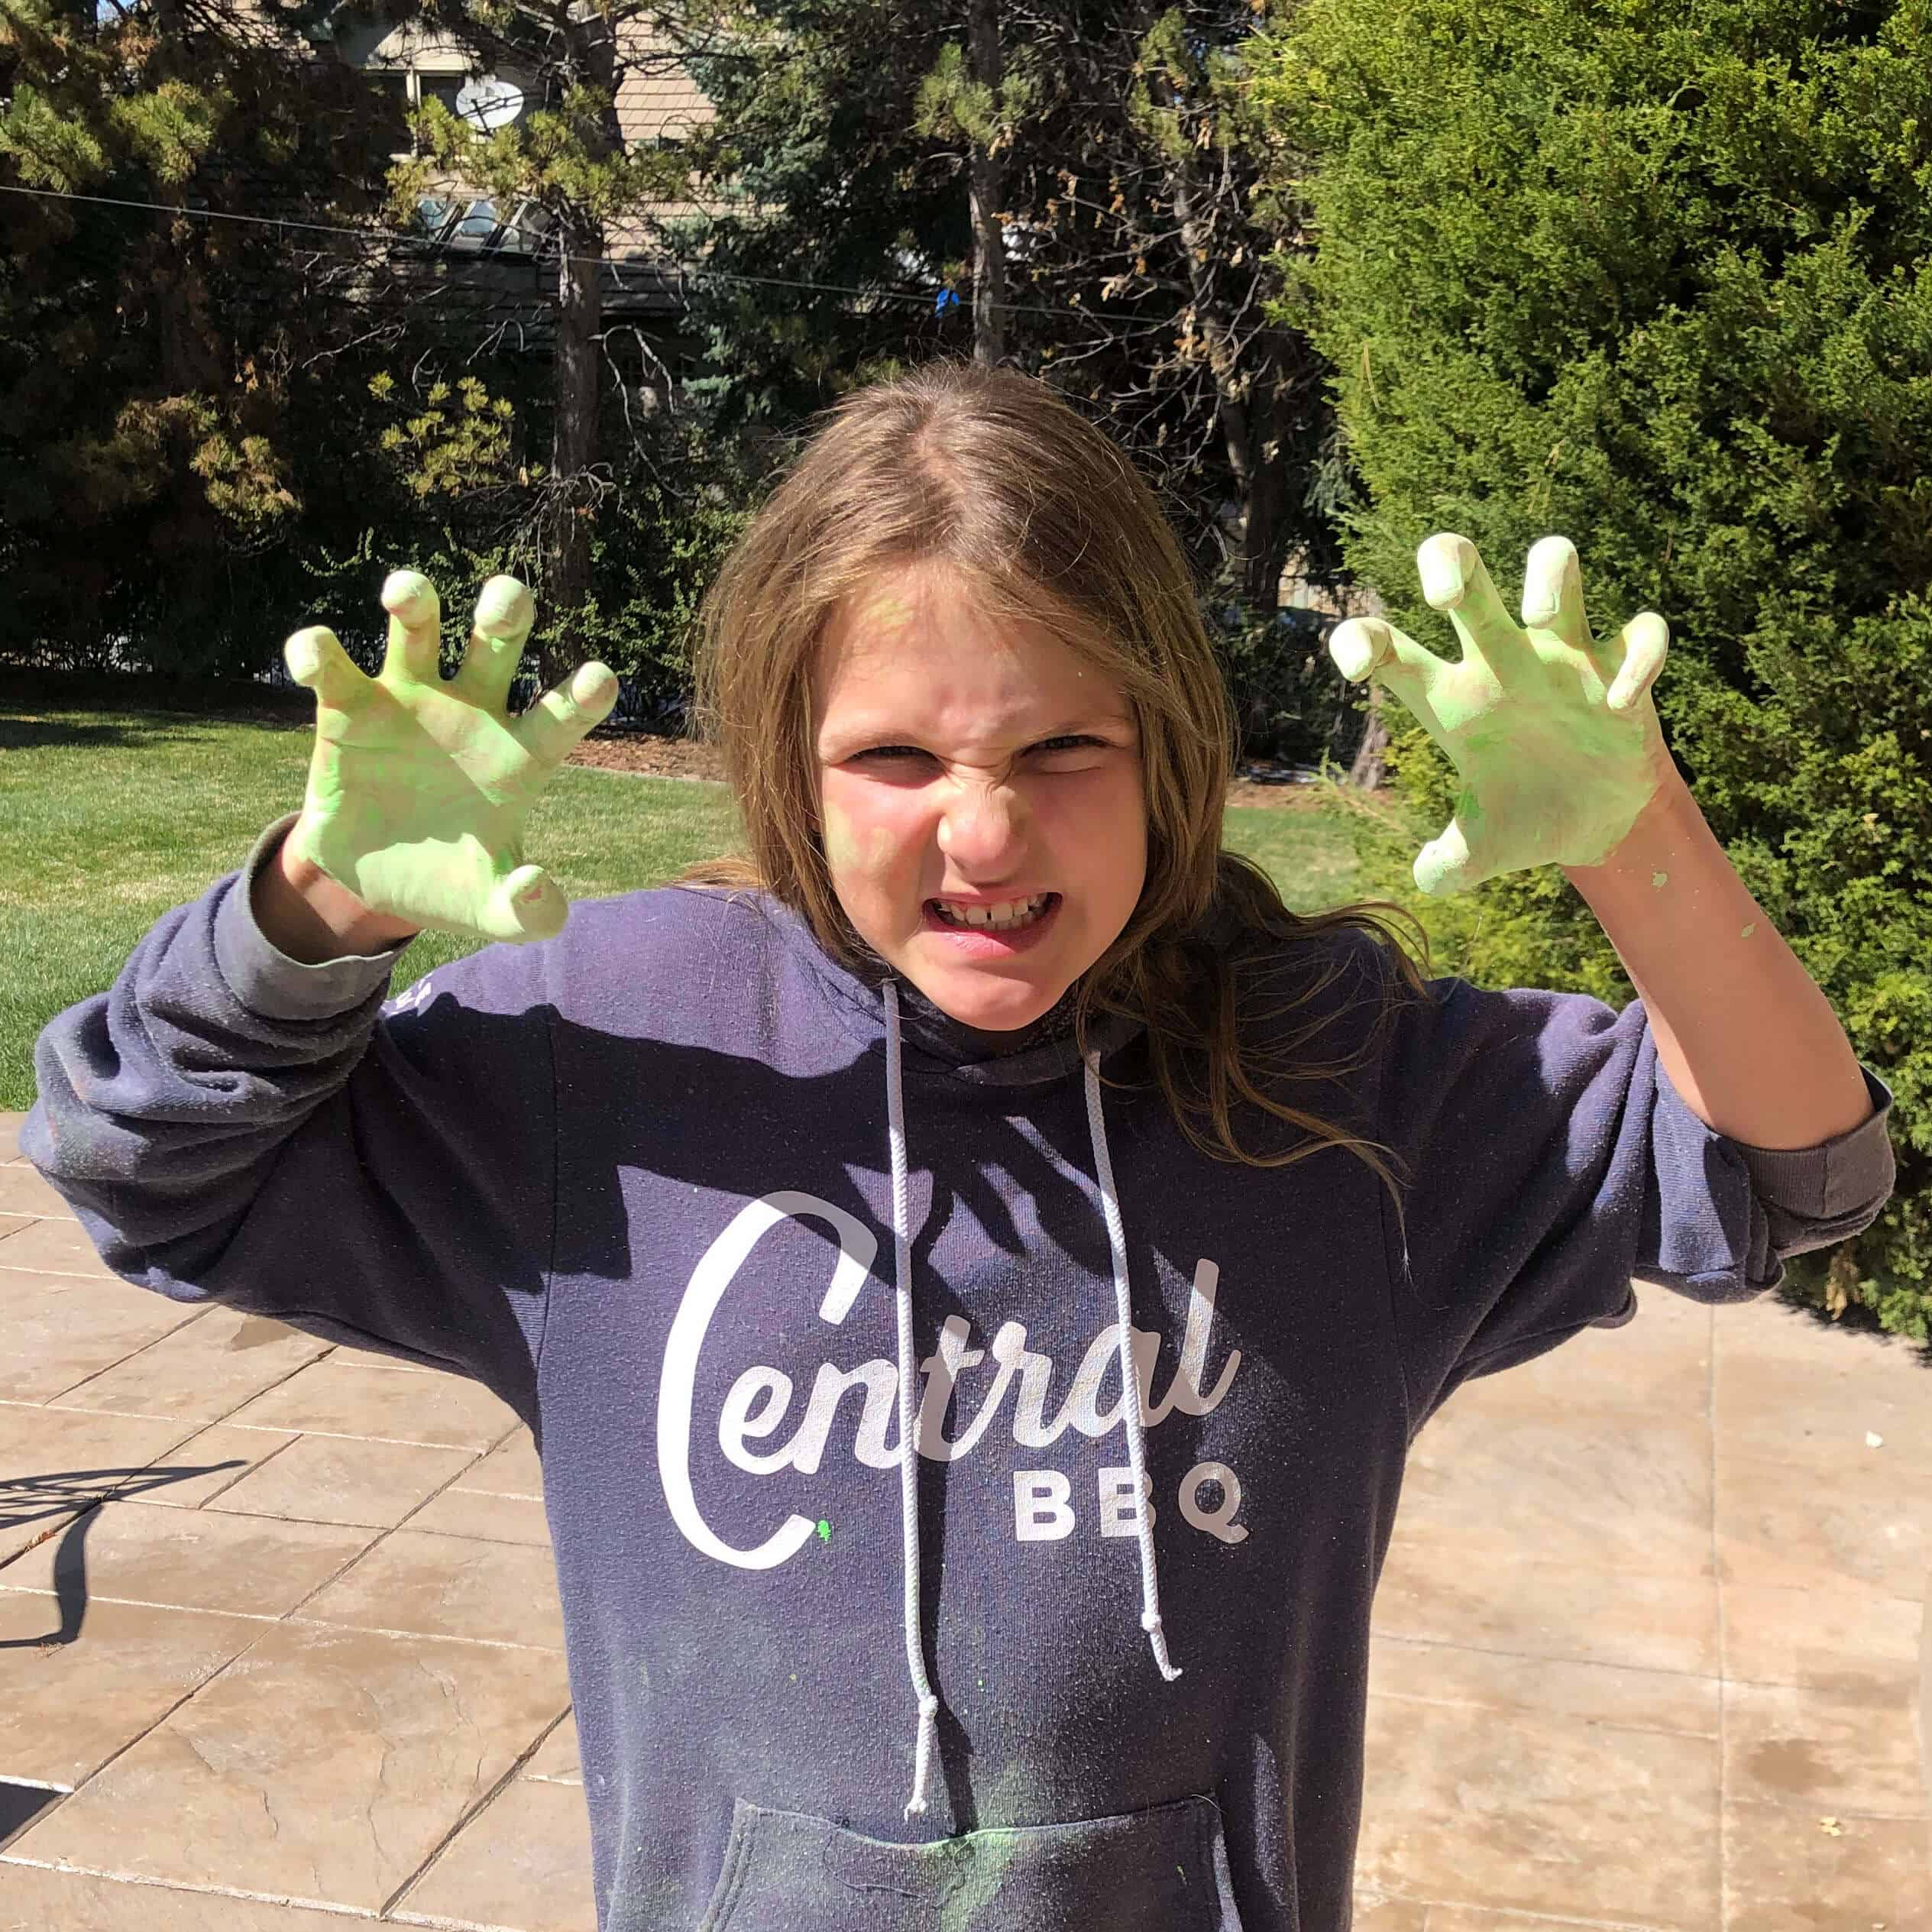 The real Rae (a young girl) with green chalk on her hands